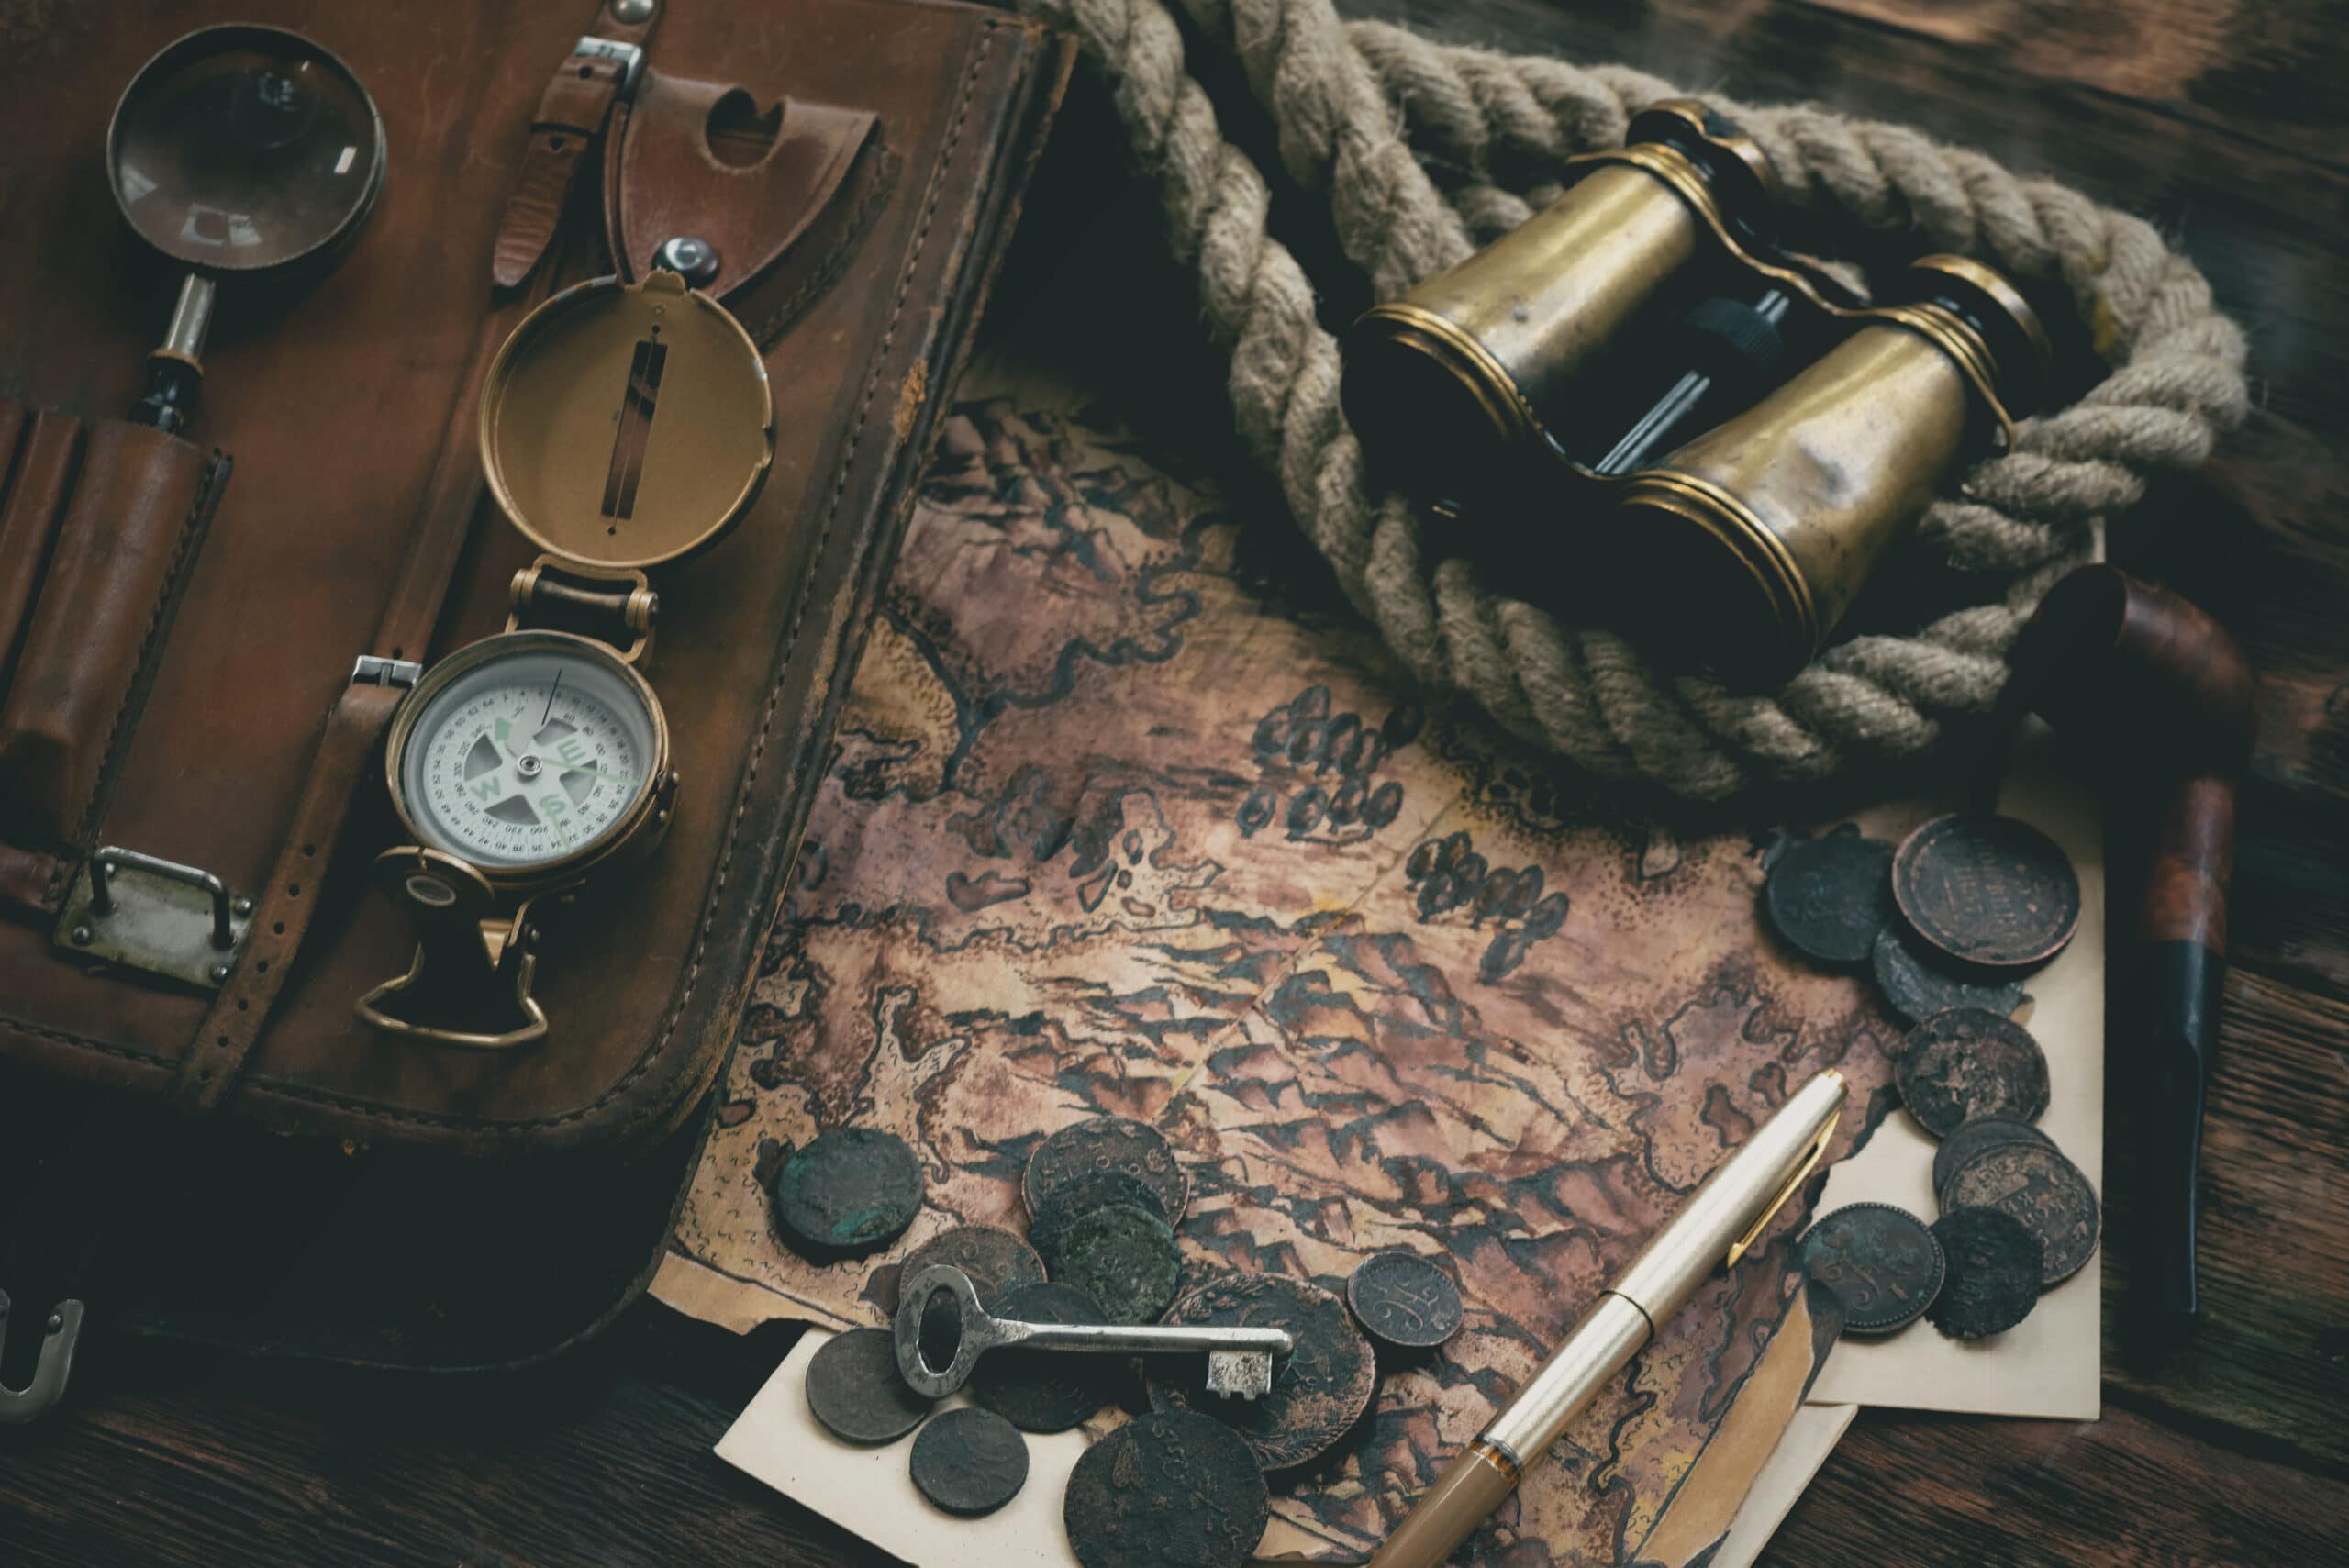 Treasure map and adventurer accessories on a wooden table background. Treasure hunt concept background.